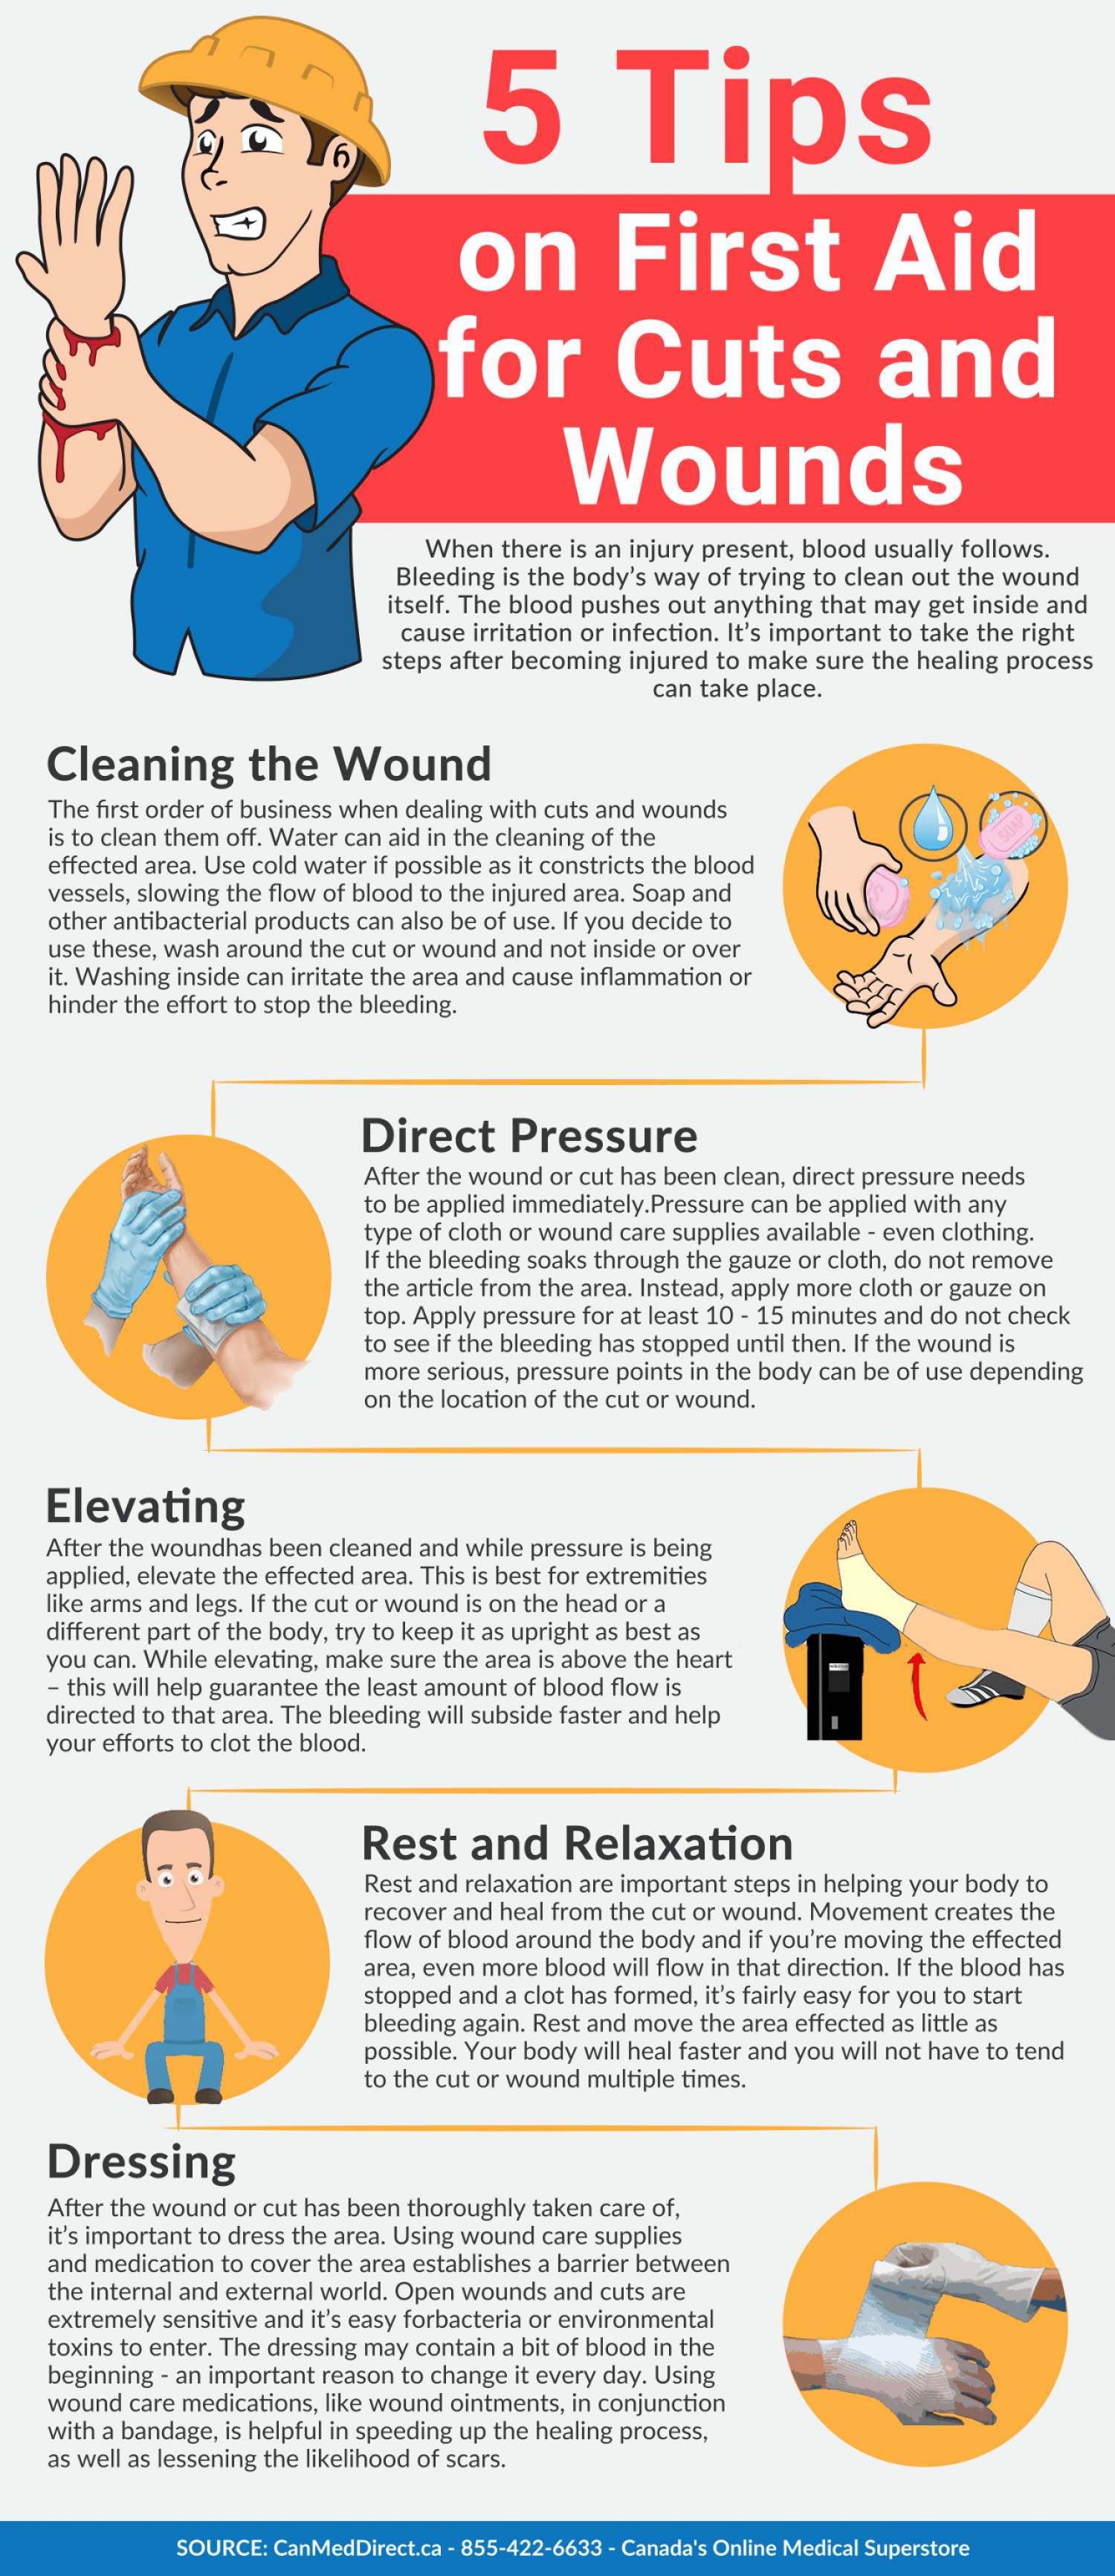 5 Tips On First Aid For Cuts And Wounds